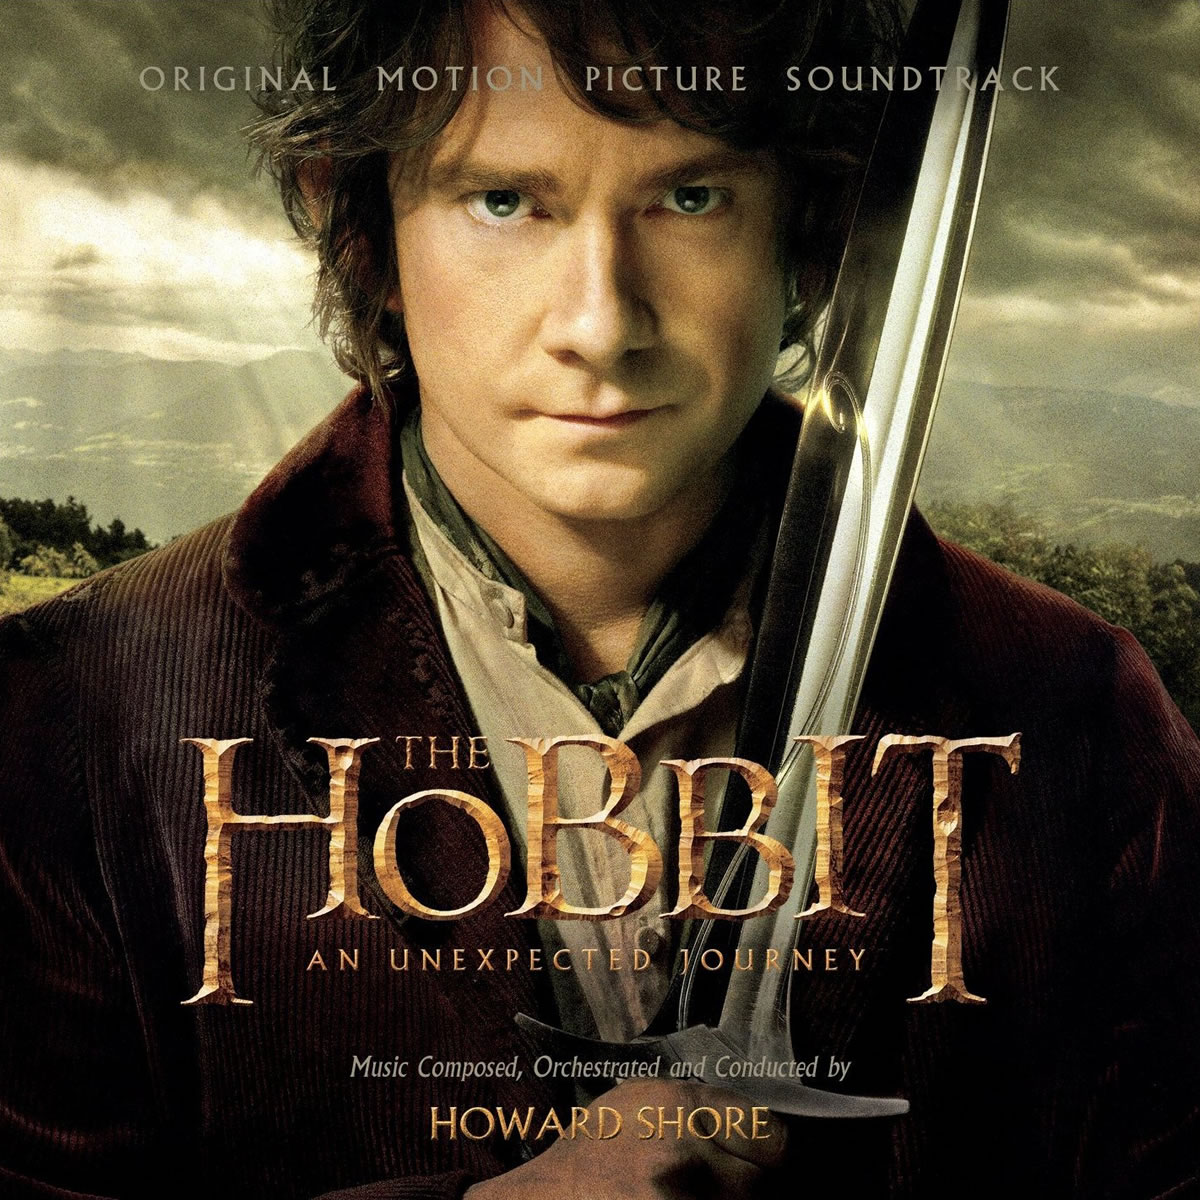 THE HOBBIT: AN UNEXPECTED JOURNEY - ORIGINAL MOTION PICTURE SOUNDTRACK (2 AUDIO CDs)